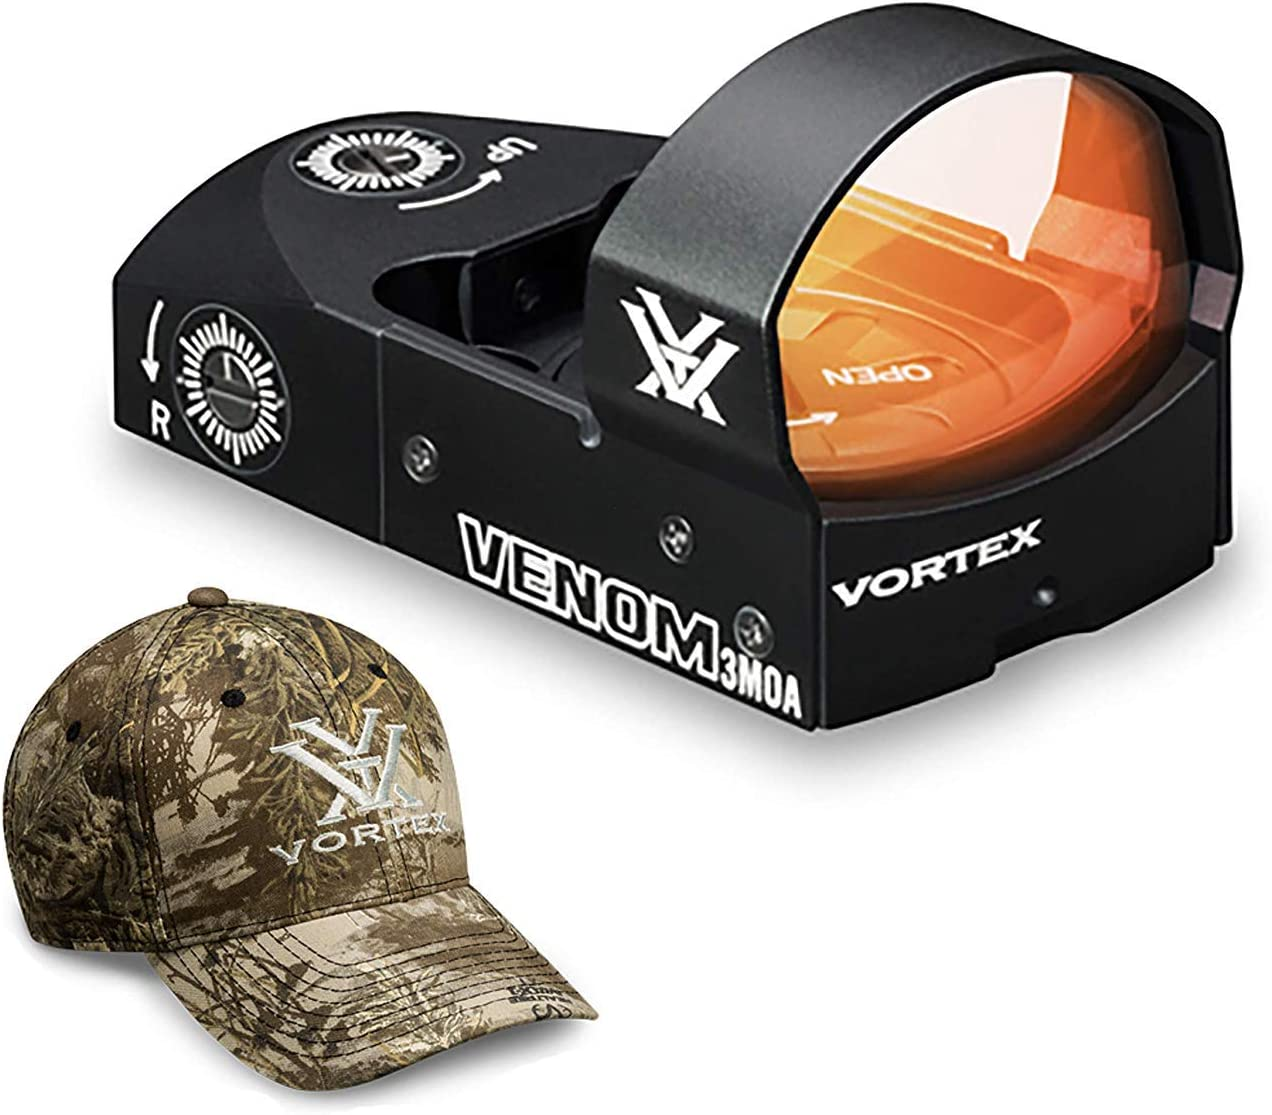 3. Vortex Optics Venom Red Dot Sight